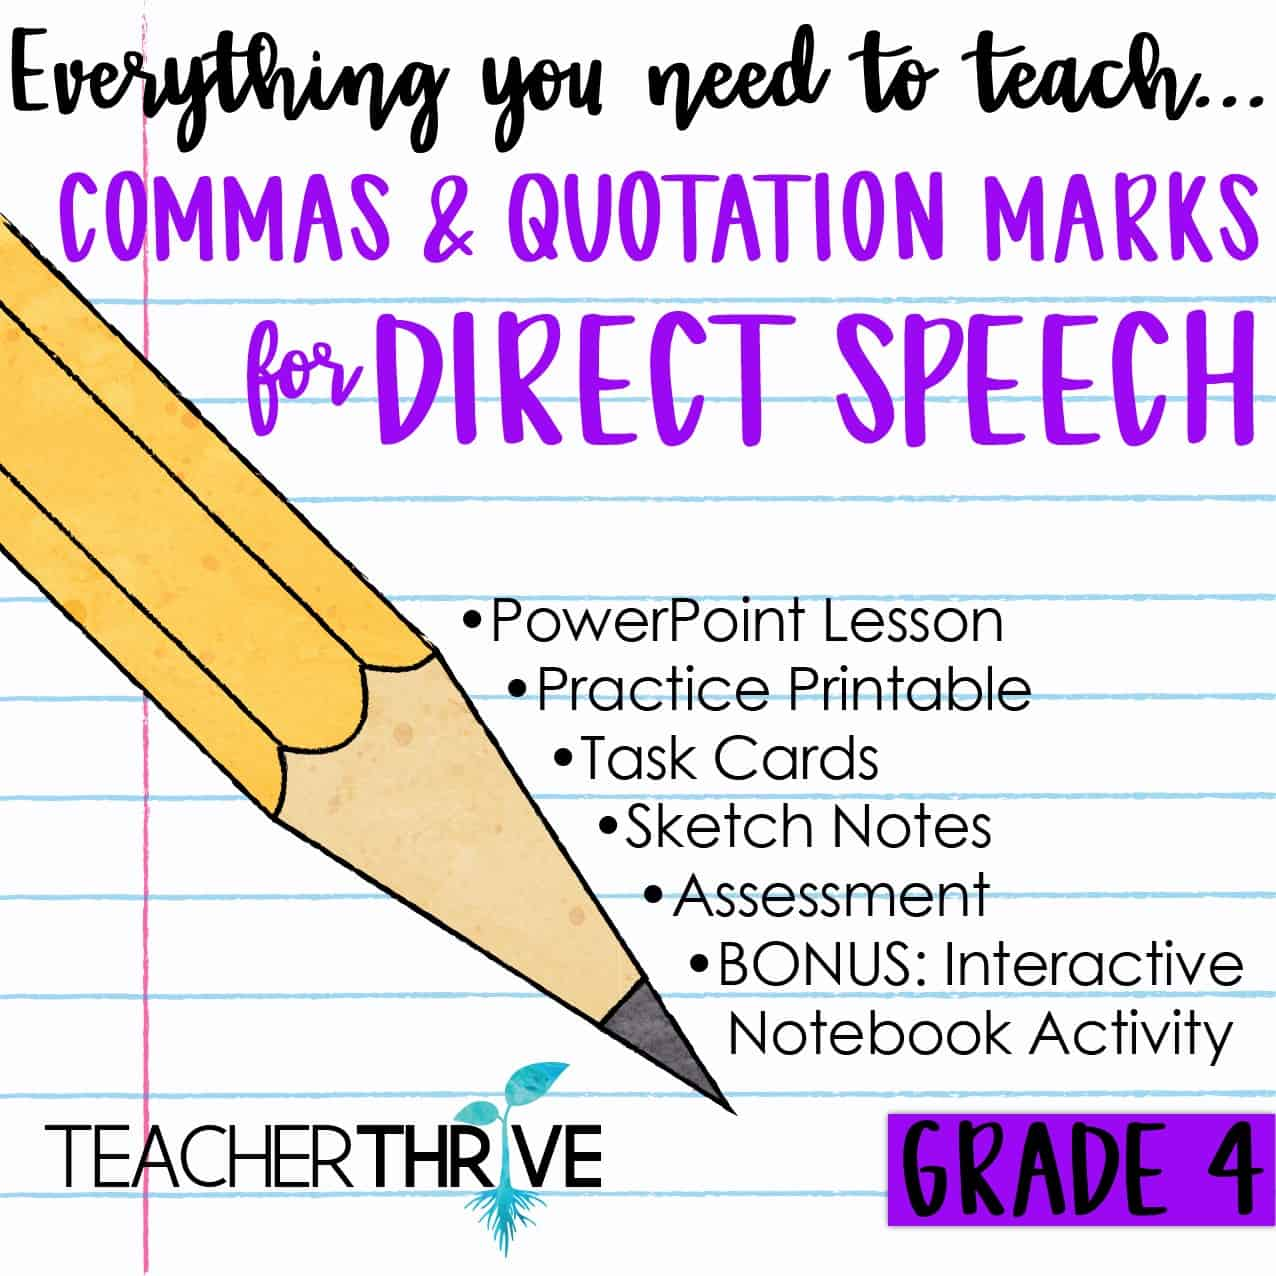 Commas & Quotations for Direct Speech